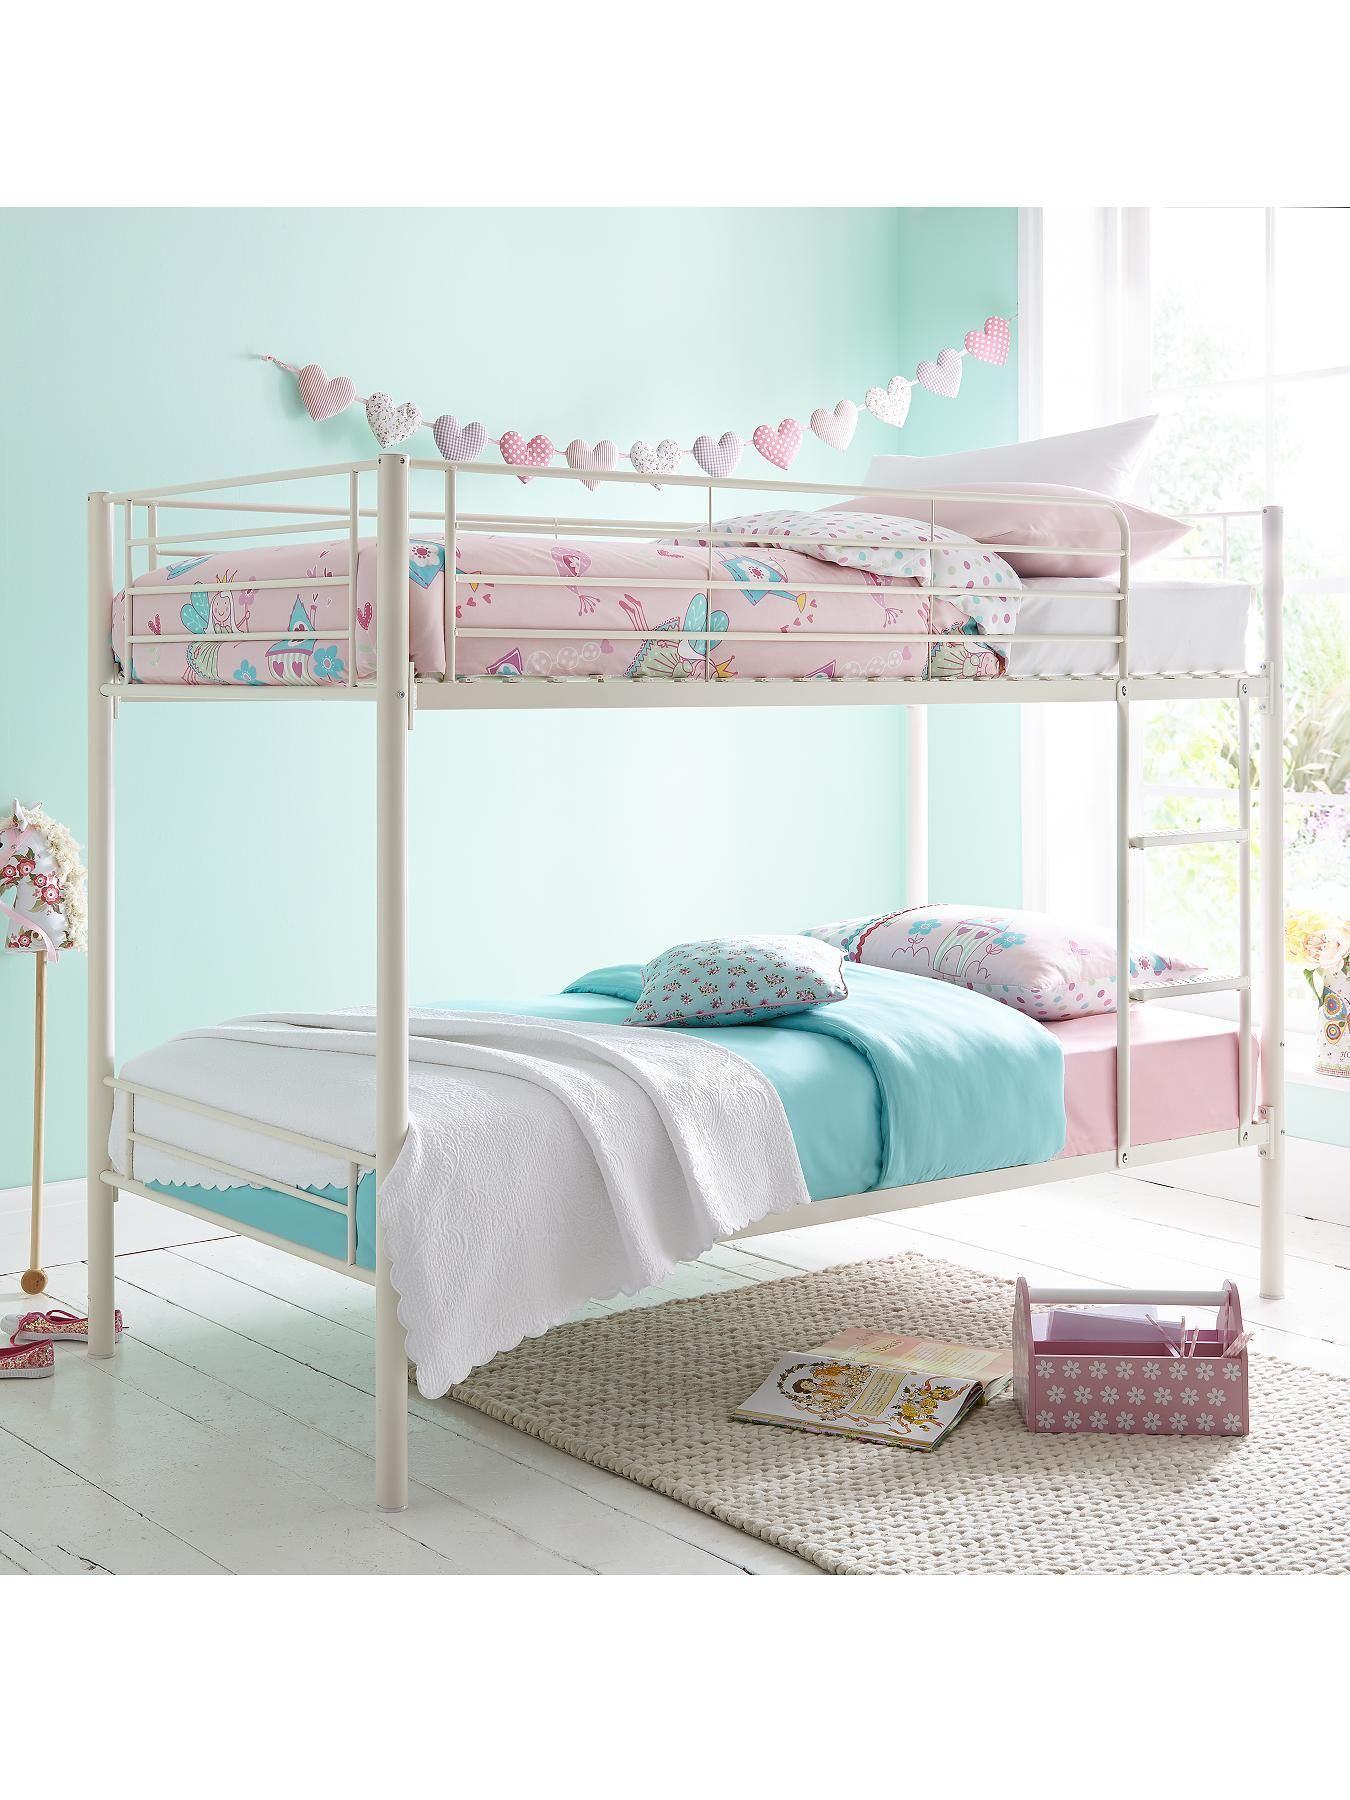 Domino Metal Bunk Bed Frame With Mattress Options Furniture Bunk